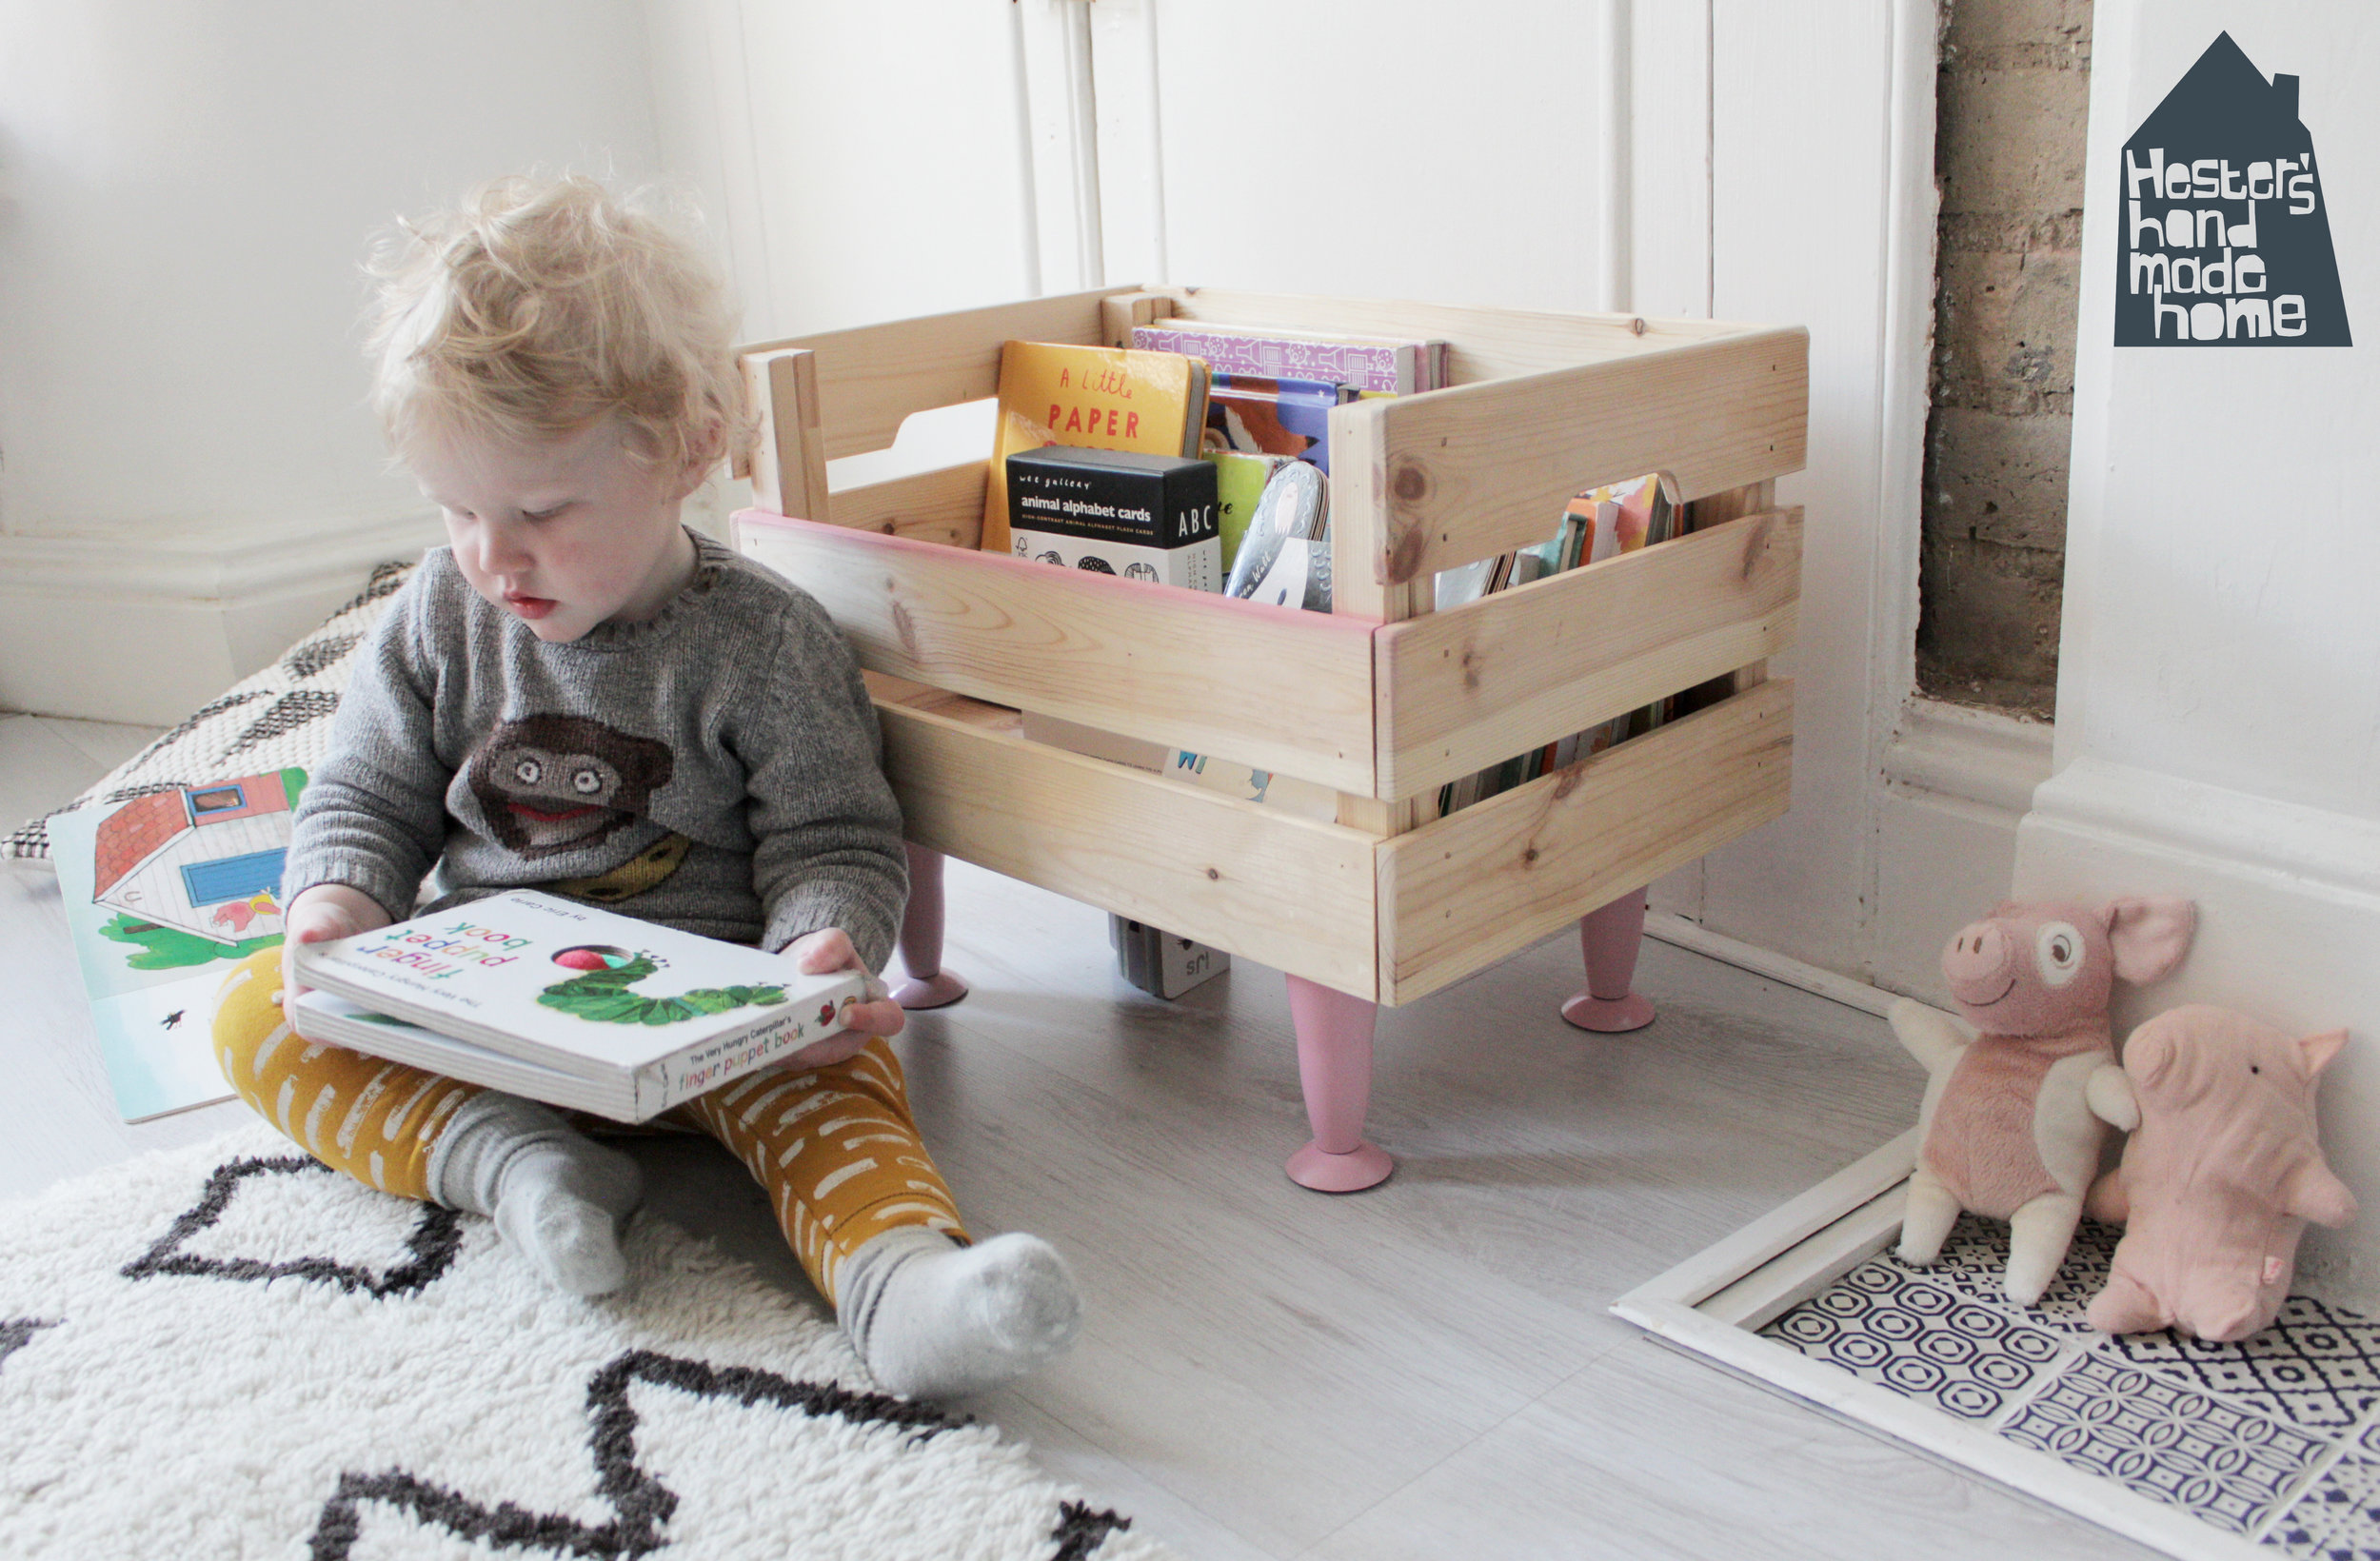 Ikea Knagglig box to book storage for a toddler by www.hestershandmadehome.com